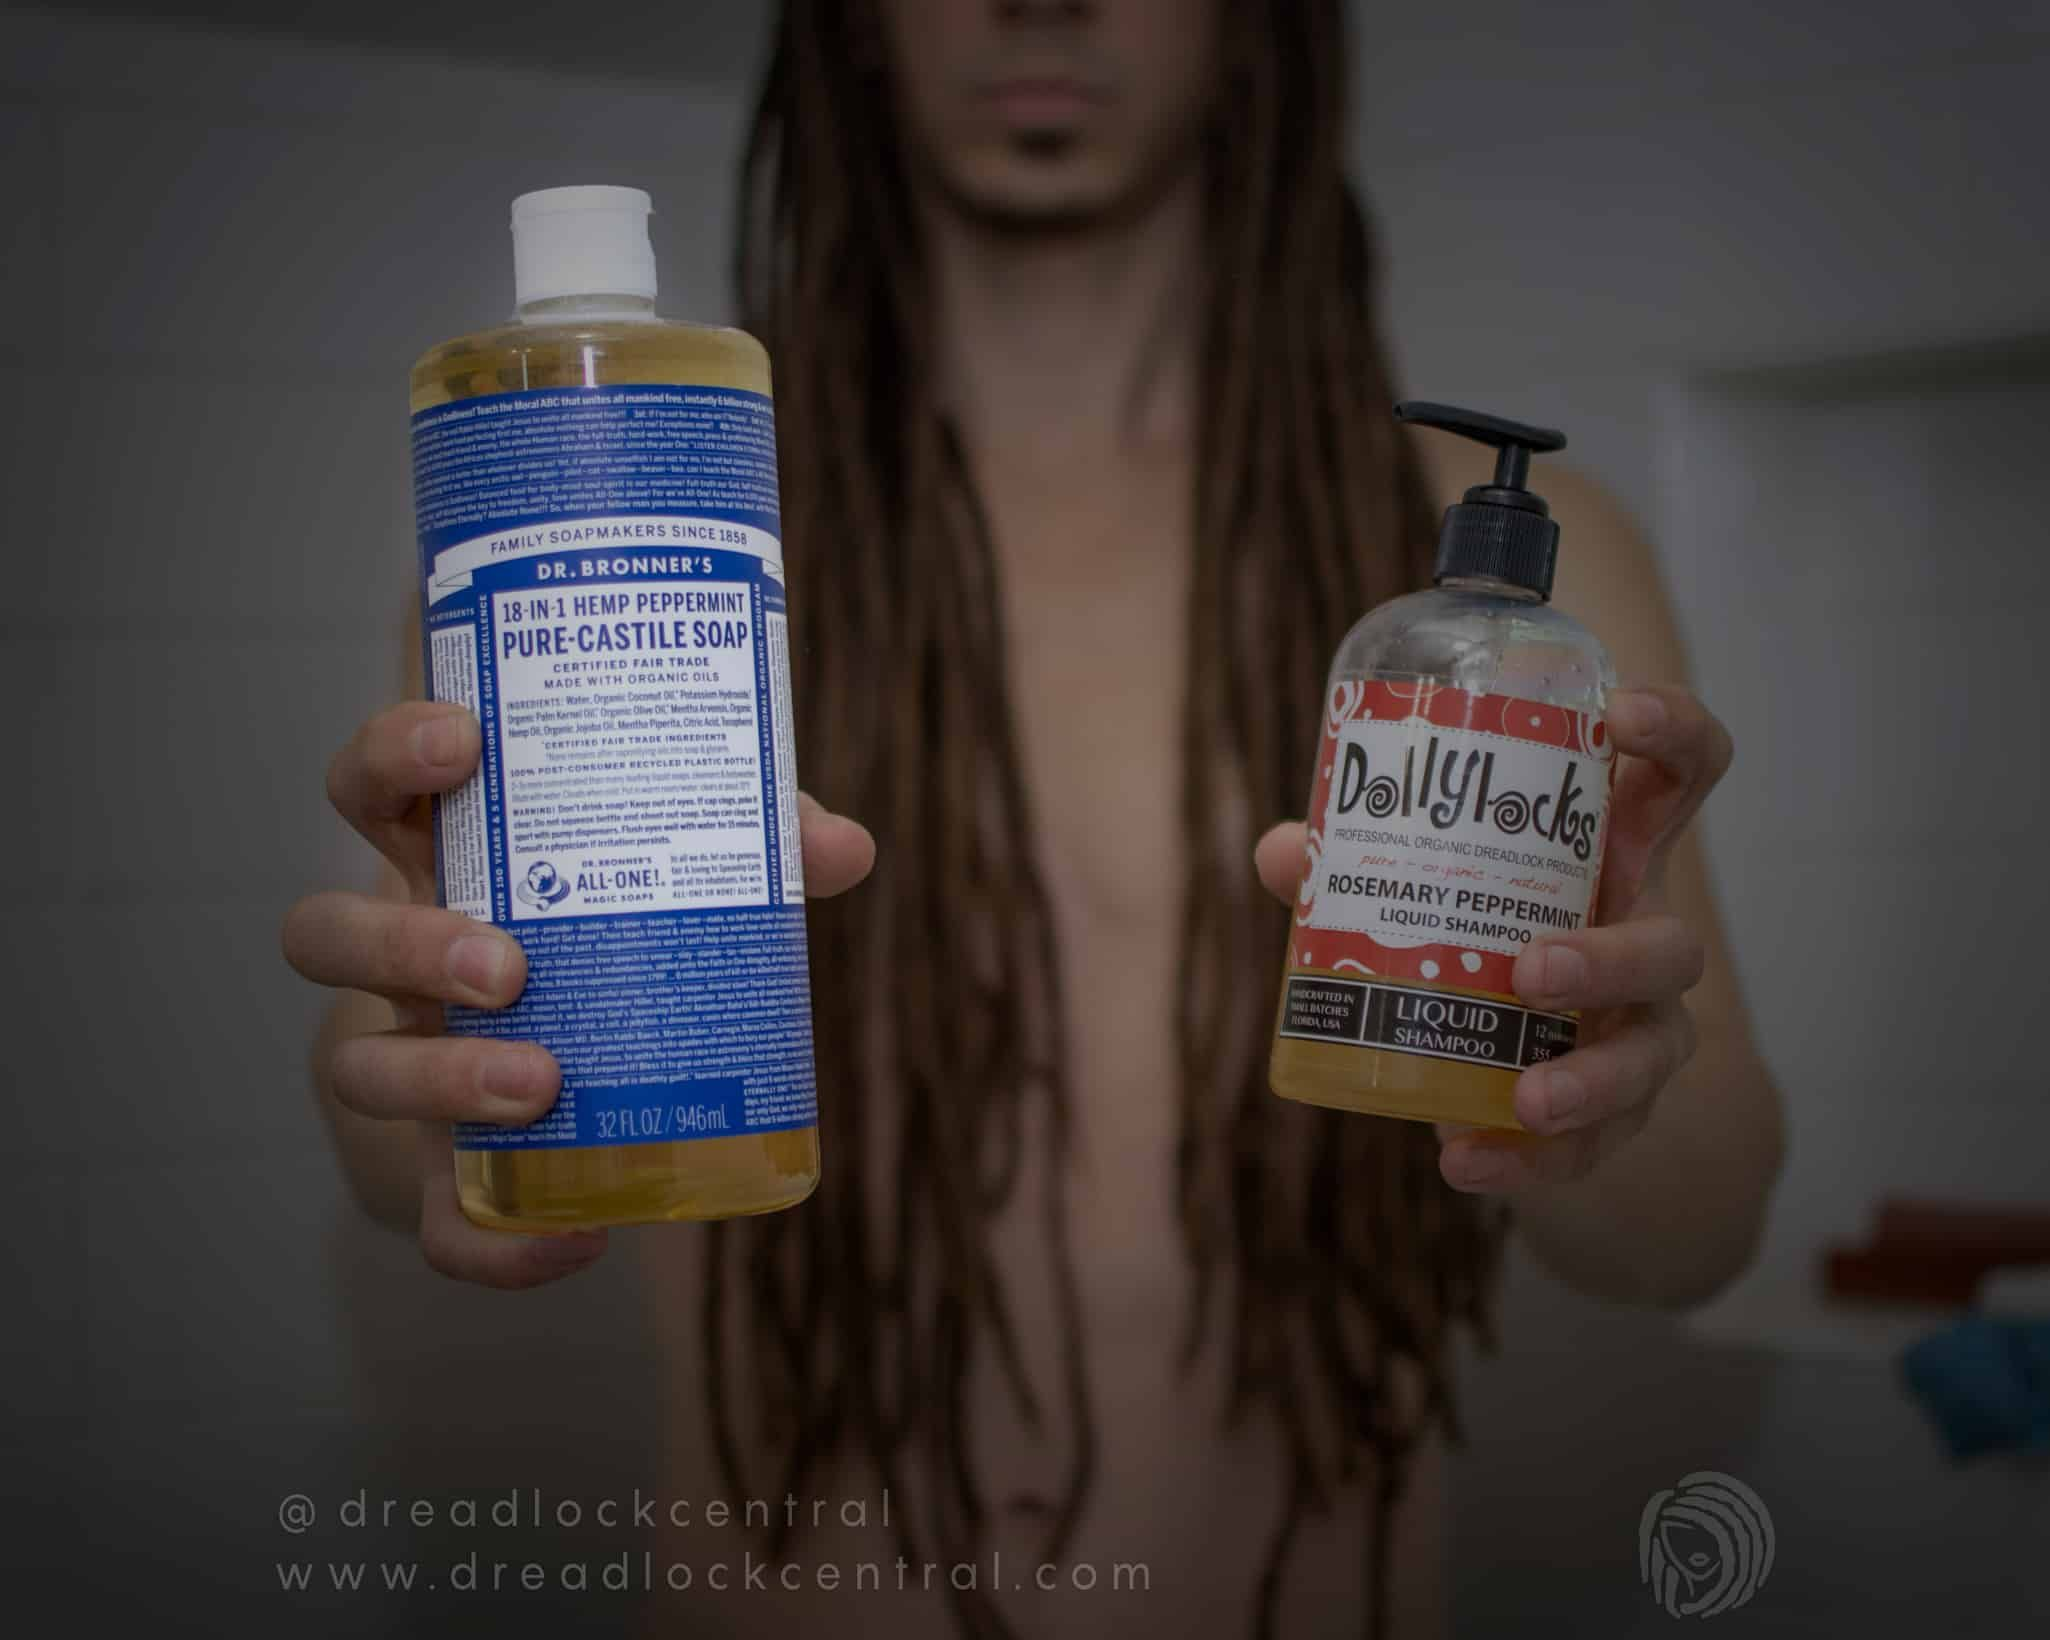 Castile Soap for Dreadlocks – Not as safe and effective as